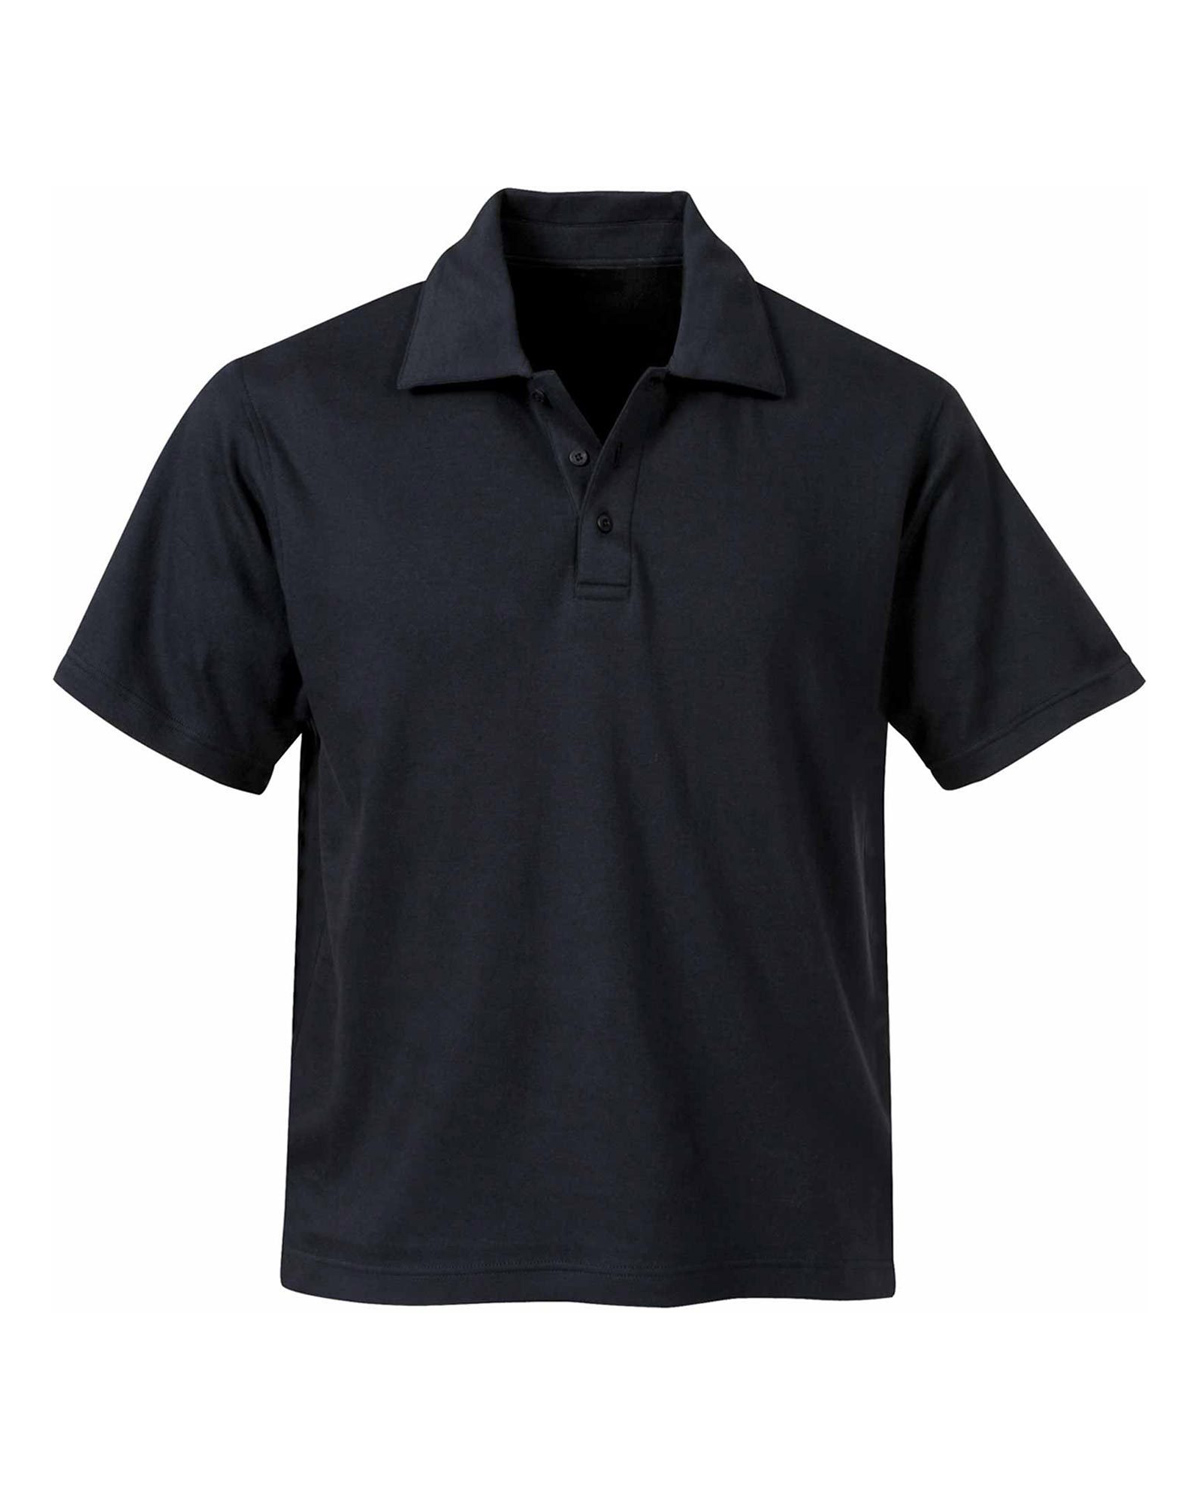 'StormTech CTN-1 Men's Liquid Cotton Short Sleeve Polo'